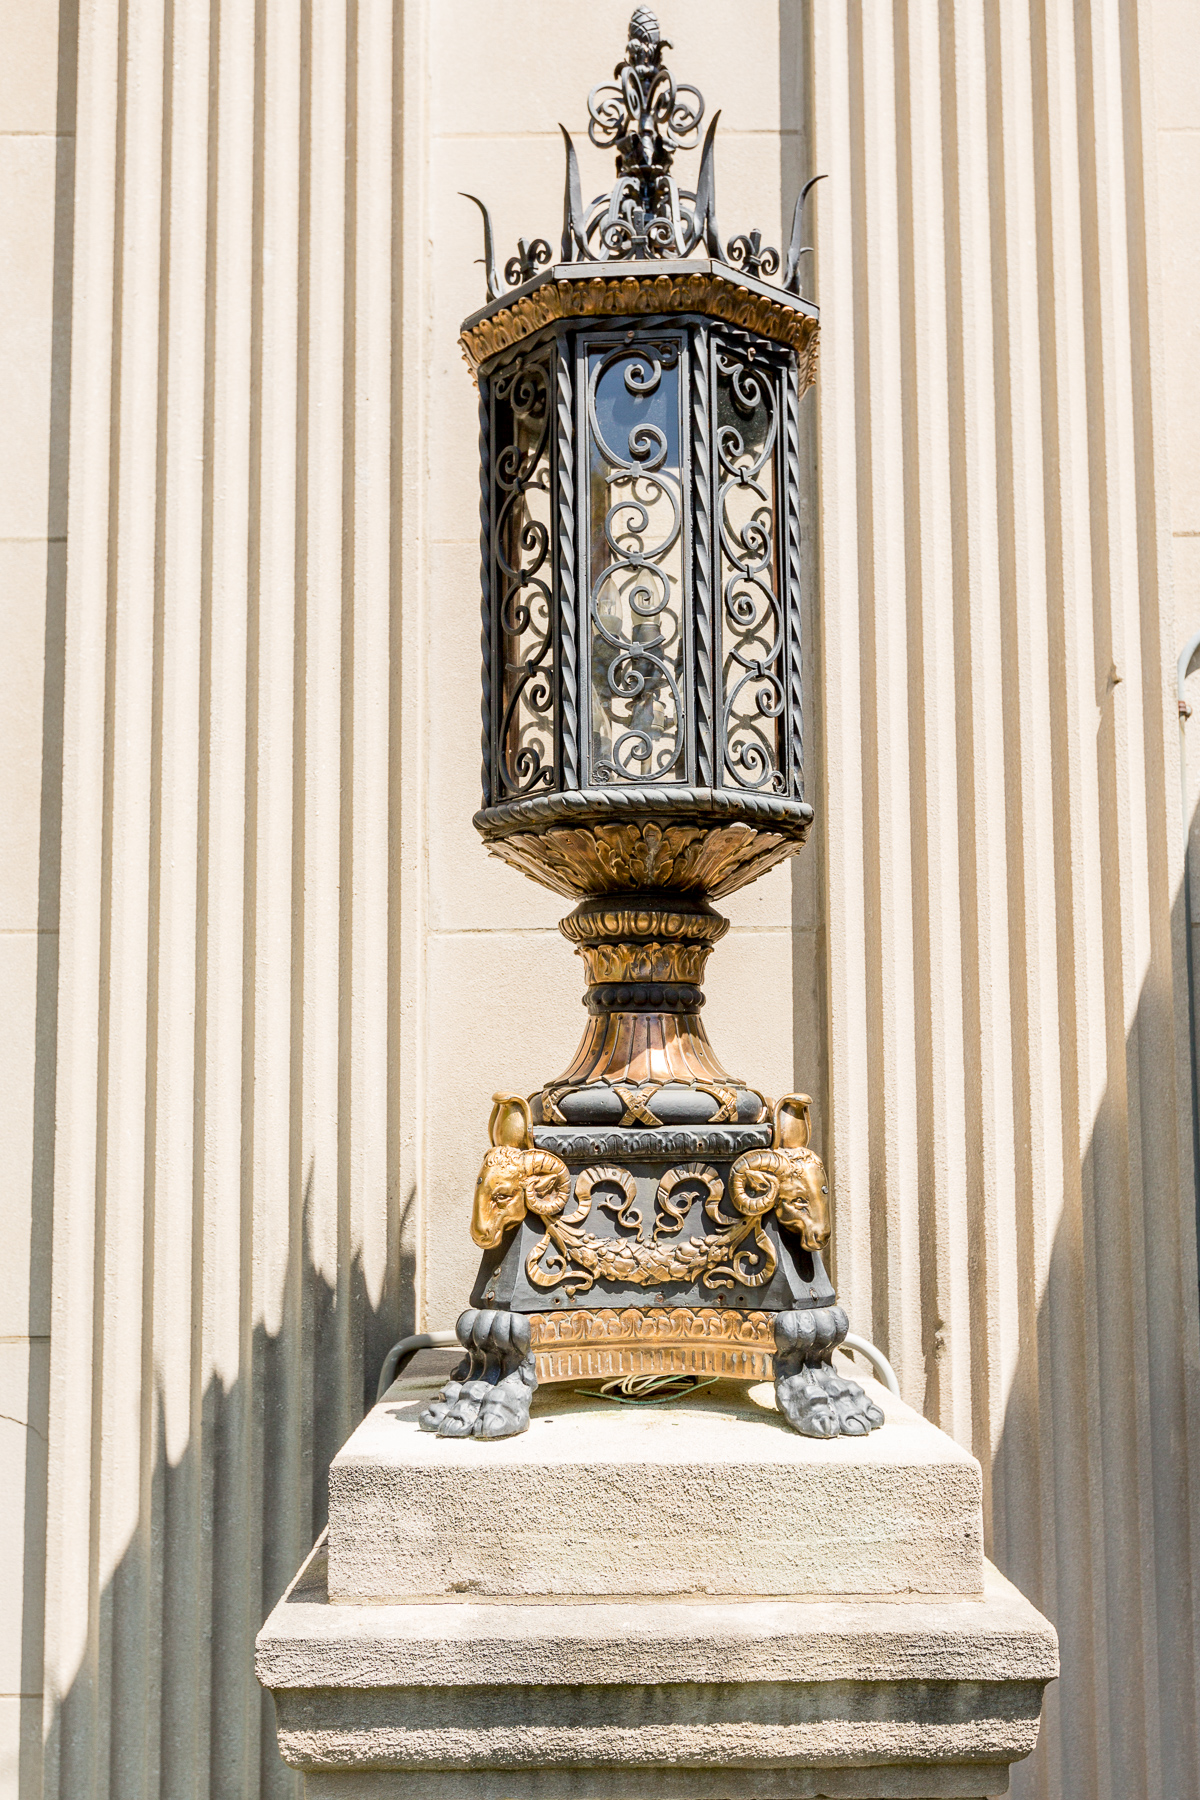 The recently restored outdoor lanterns outside the main entrance of the Belvedere. (Image: Daniel Smyth)